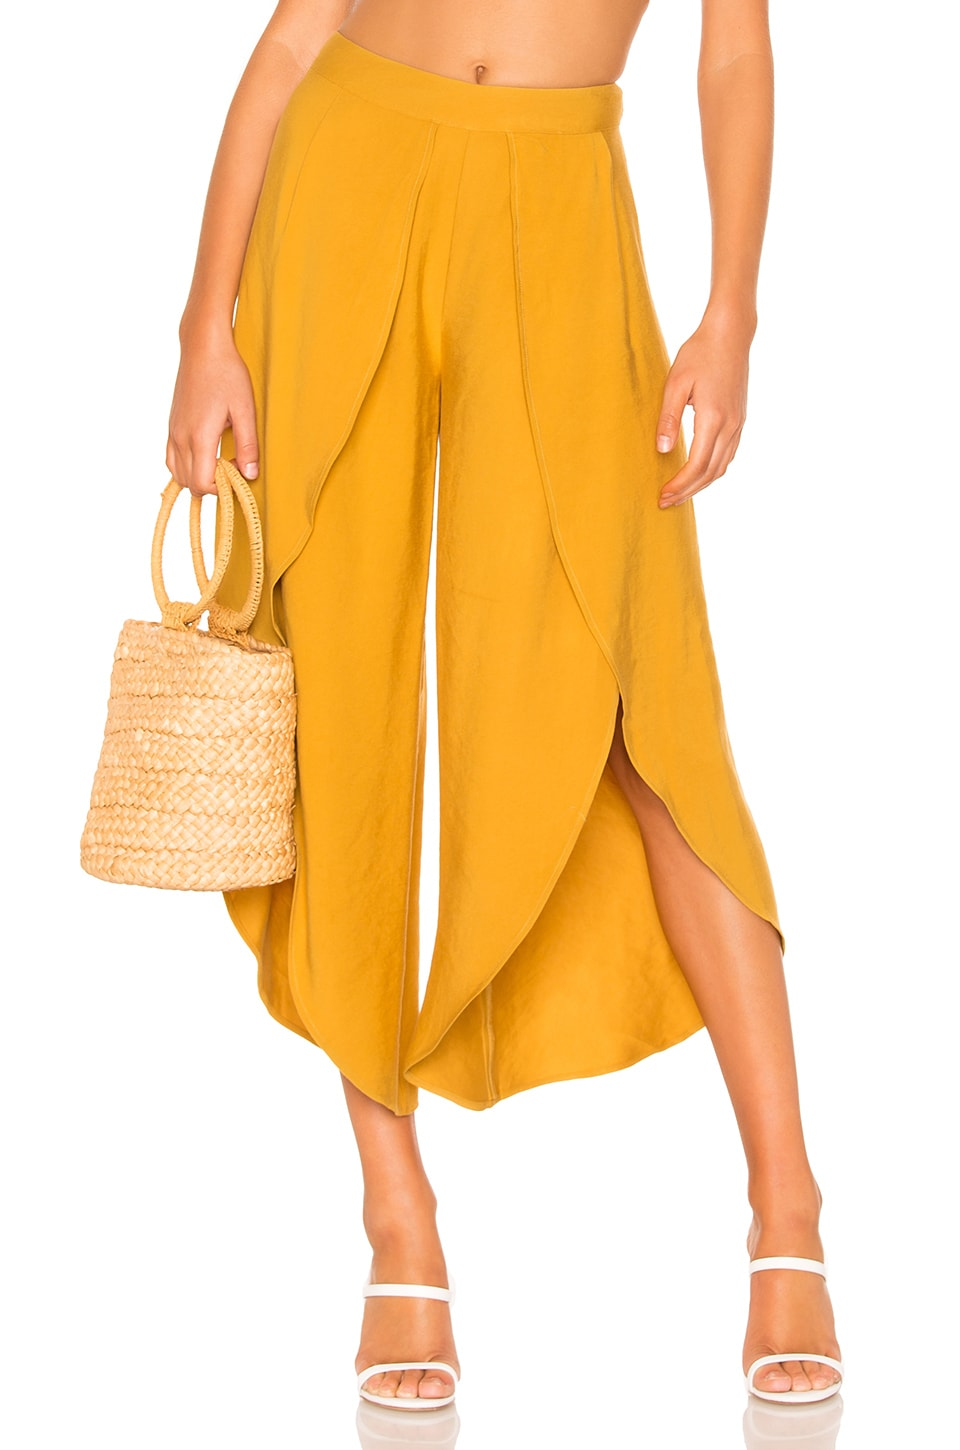 Tularosa Soul Mate Pants in Mustard